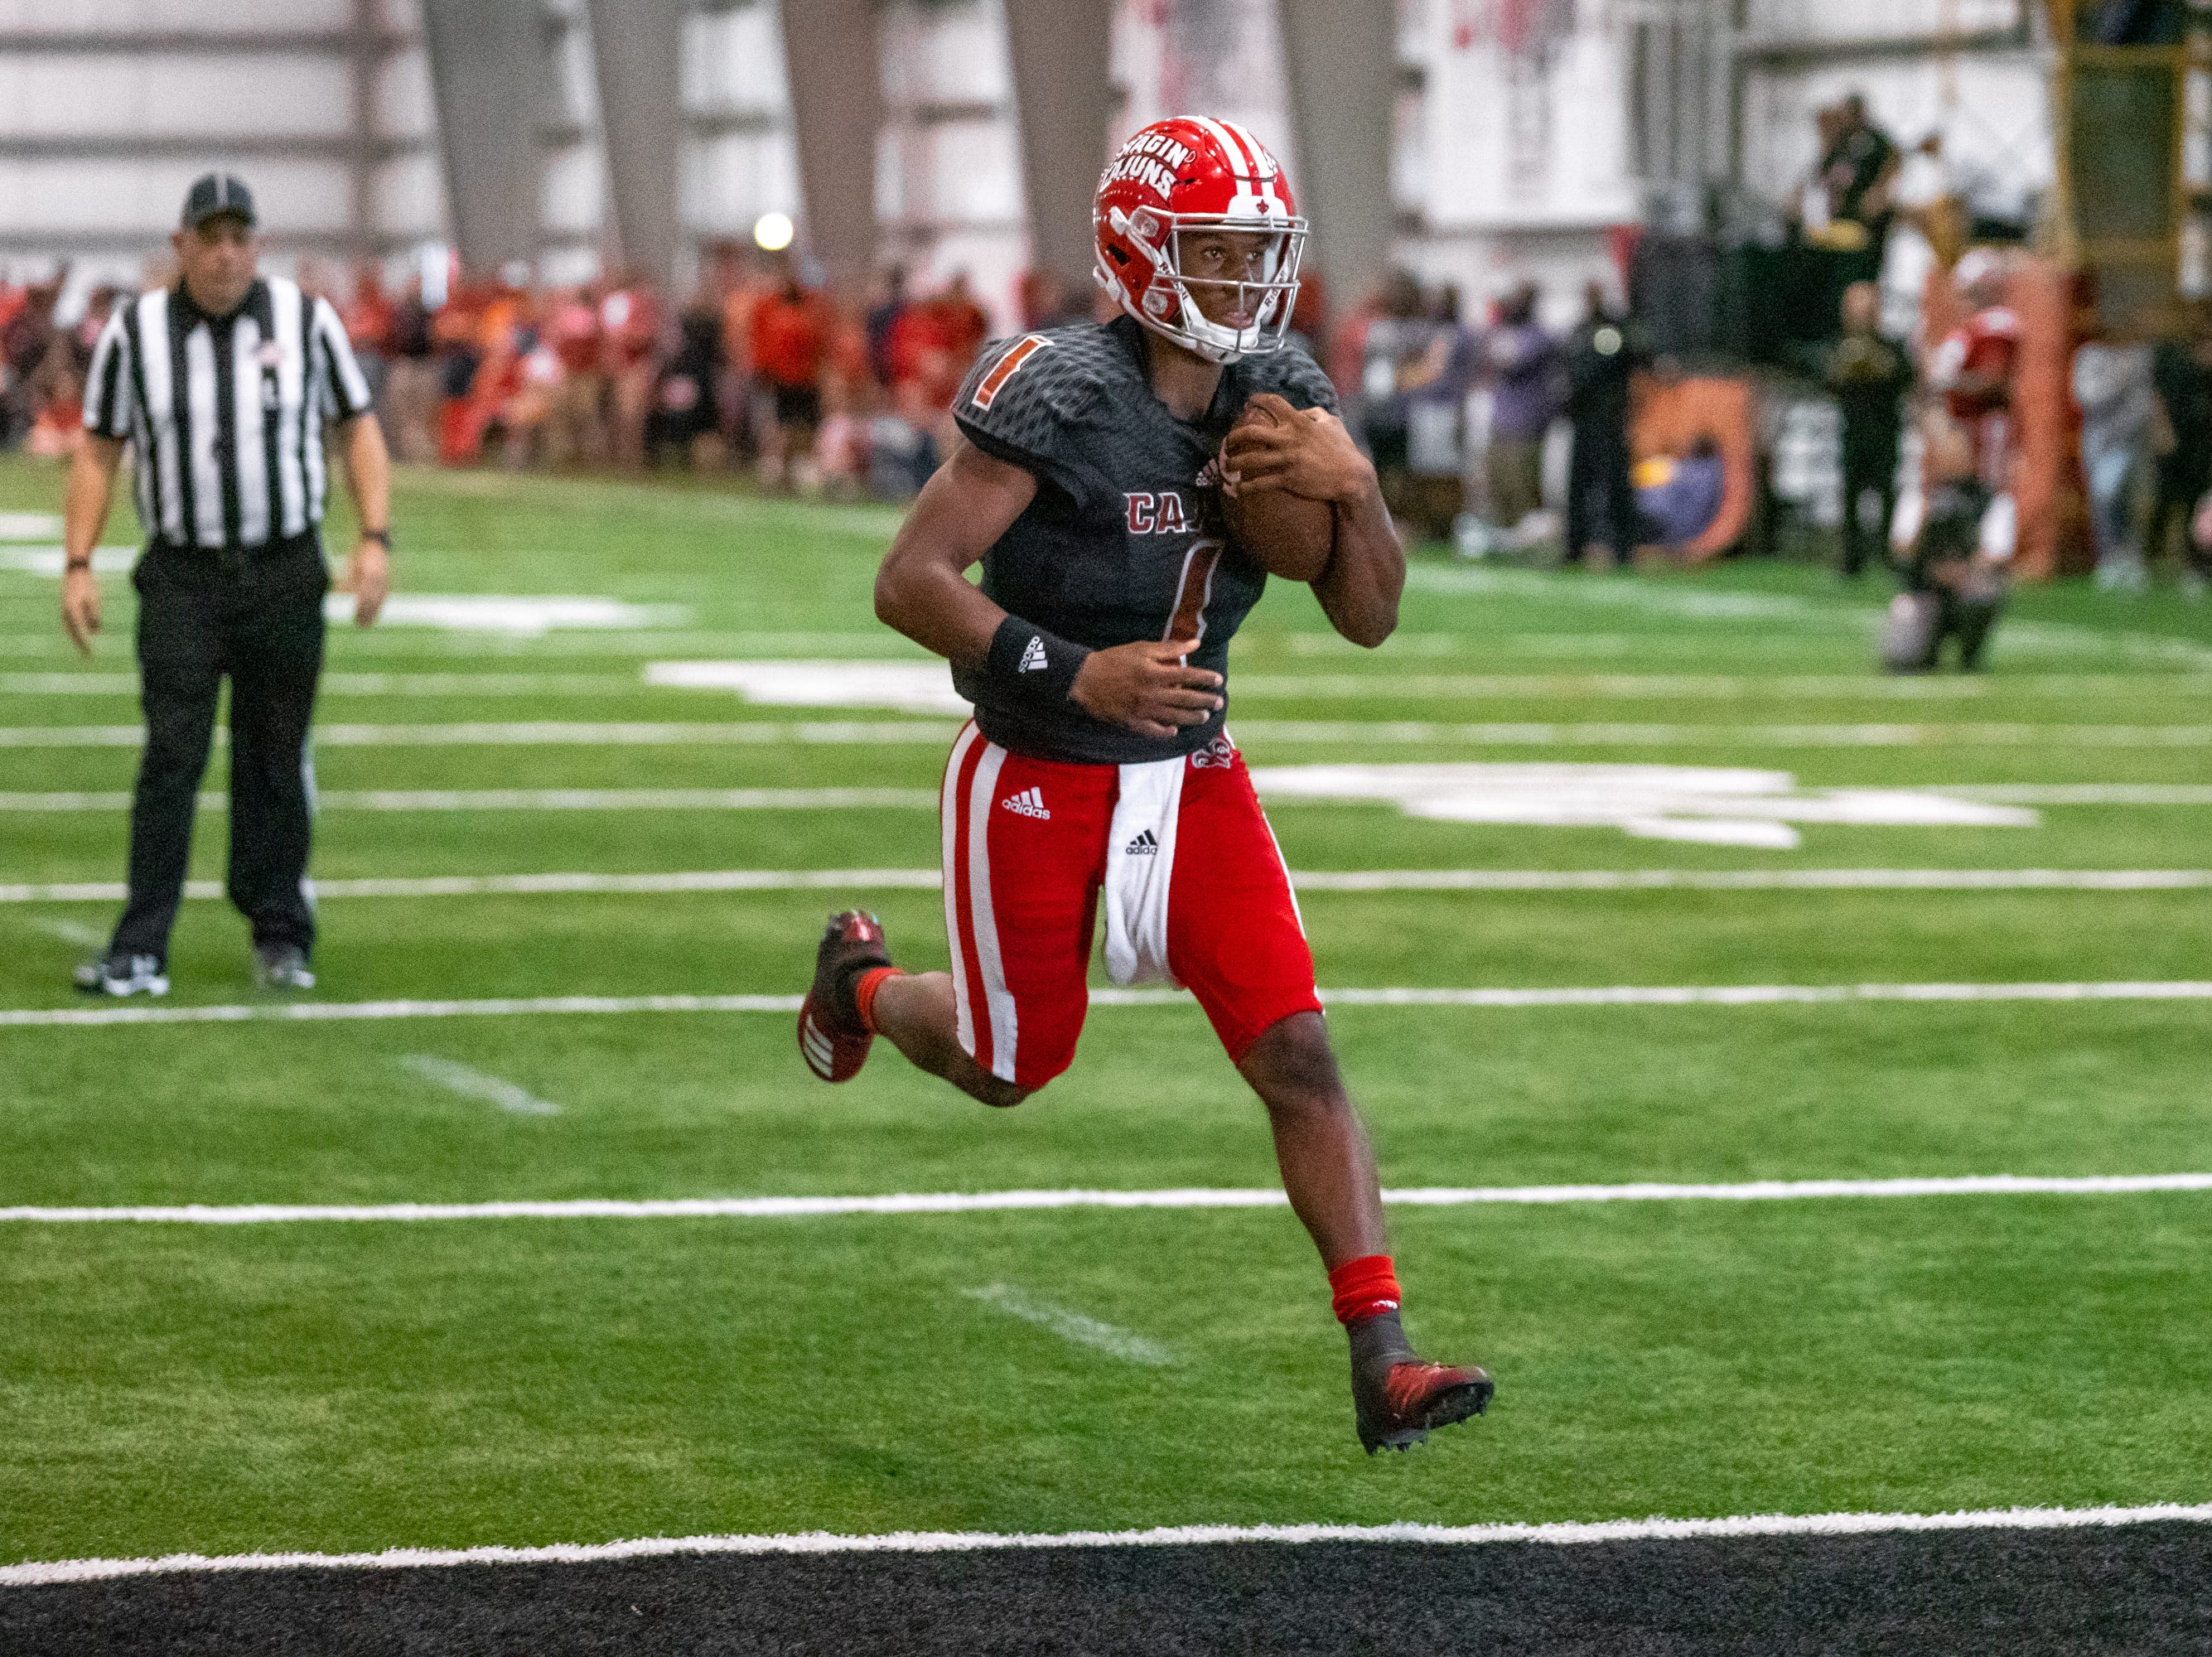 UL's quarterback Levi Lewis carries the ball to score a touchdown as the Ragin' Cajuns football team plays their annual Spring football game against one another in the Leon Moncla trainig facility on April 13, 2019.